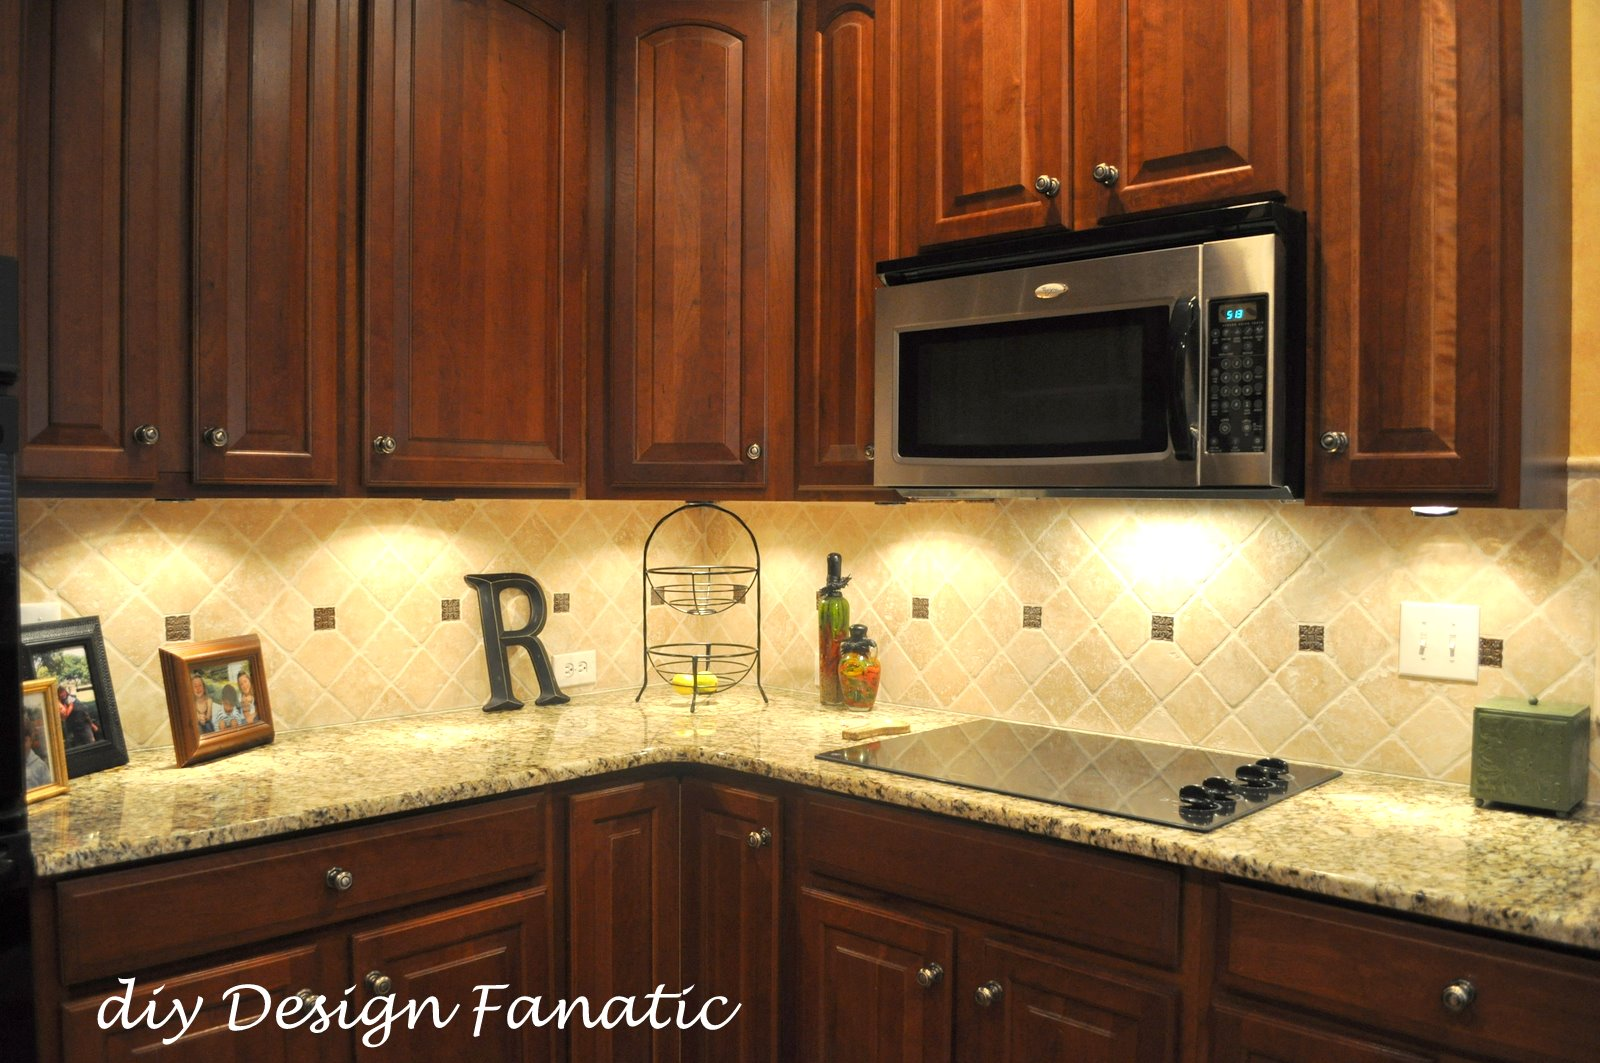 A Closer Look At The Backsplash Installed On A Diagonal